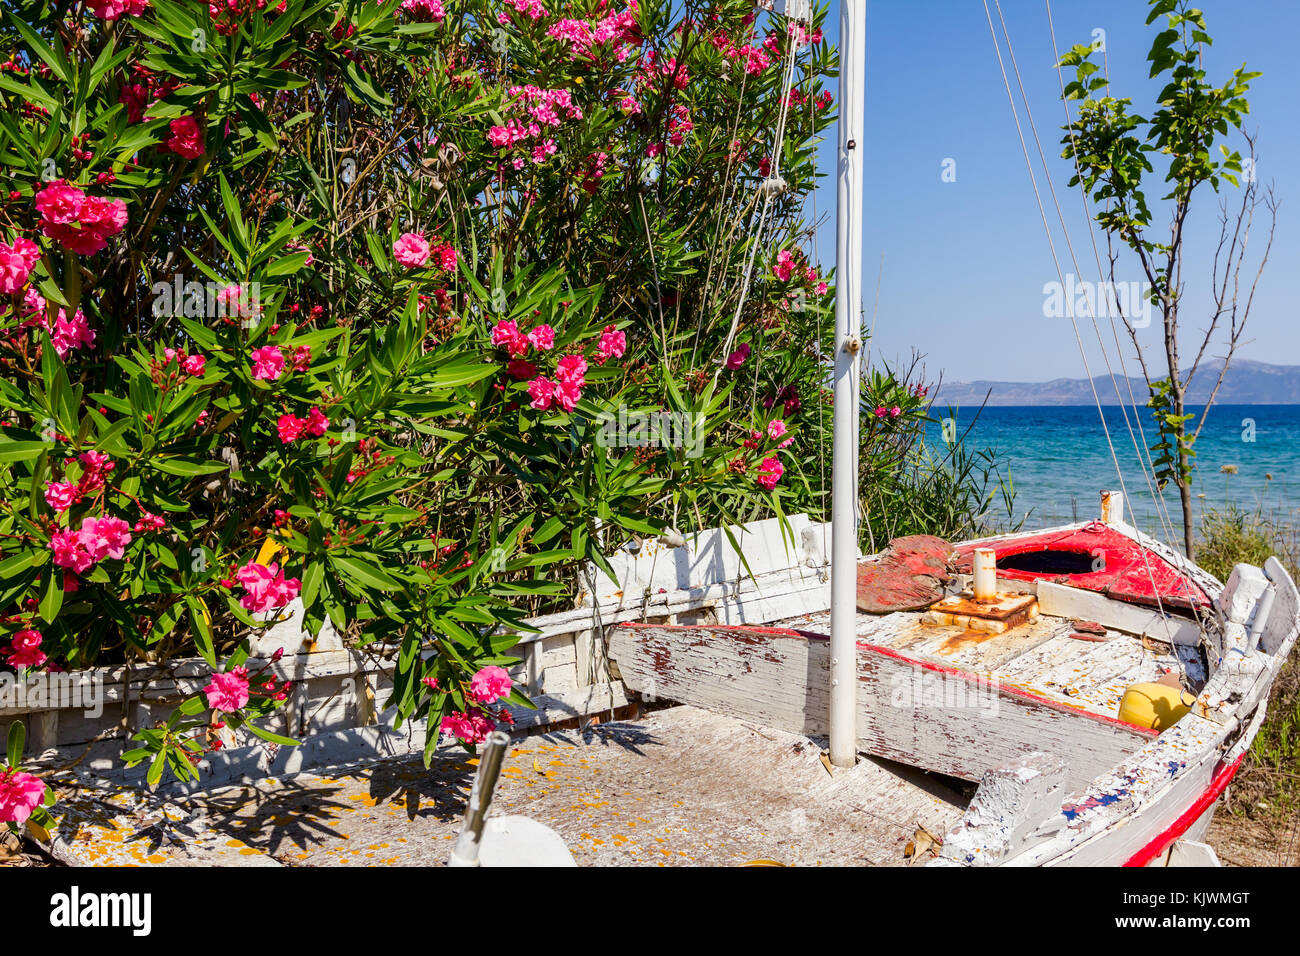 Overgrown in weed, old wooden sailboat is dry docked, withdrawn to the beach. - Stock Image